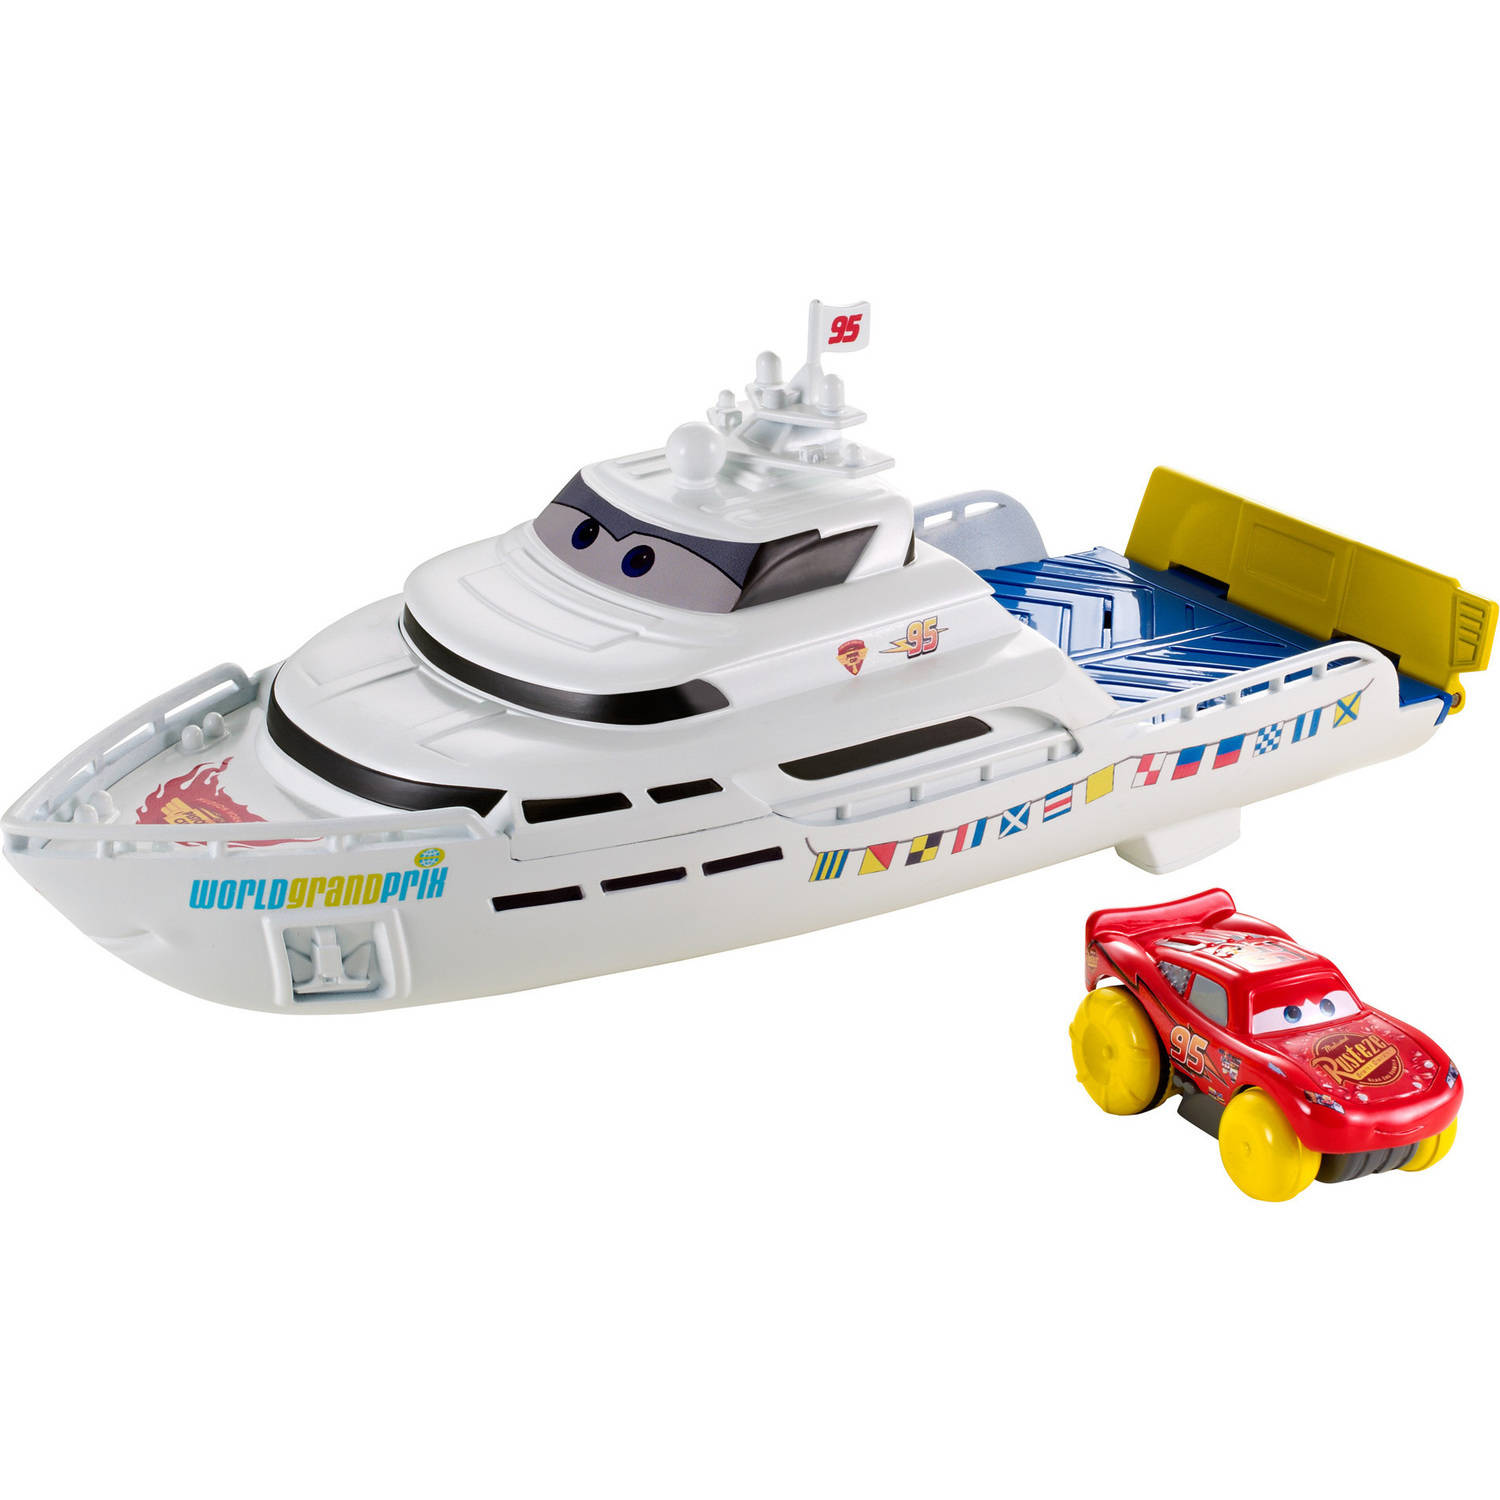 Disney Cars Porto Corsa Splash 'N' Race Boat